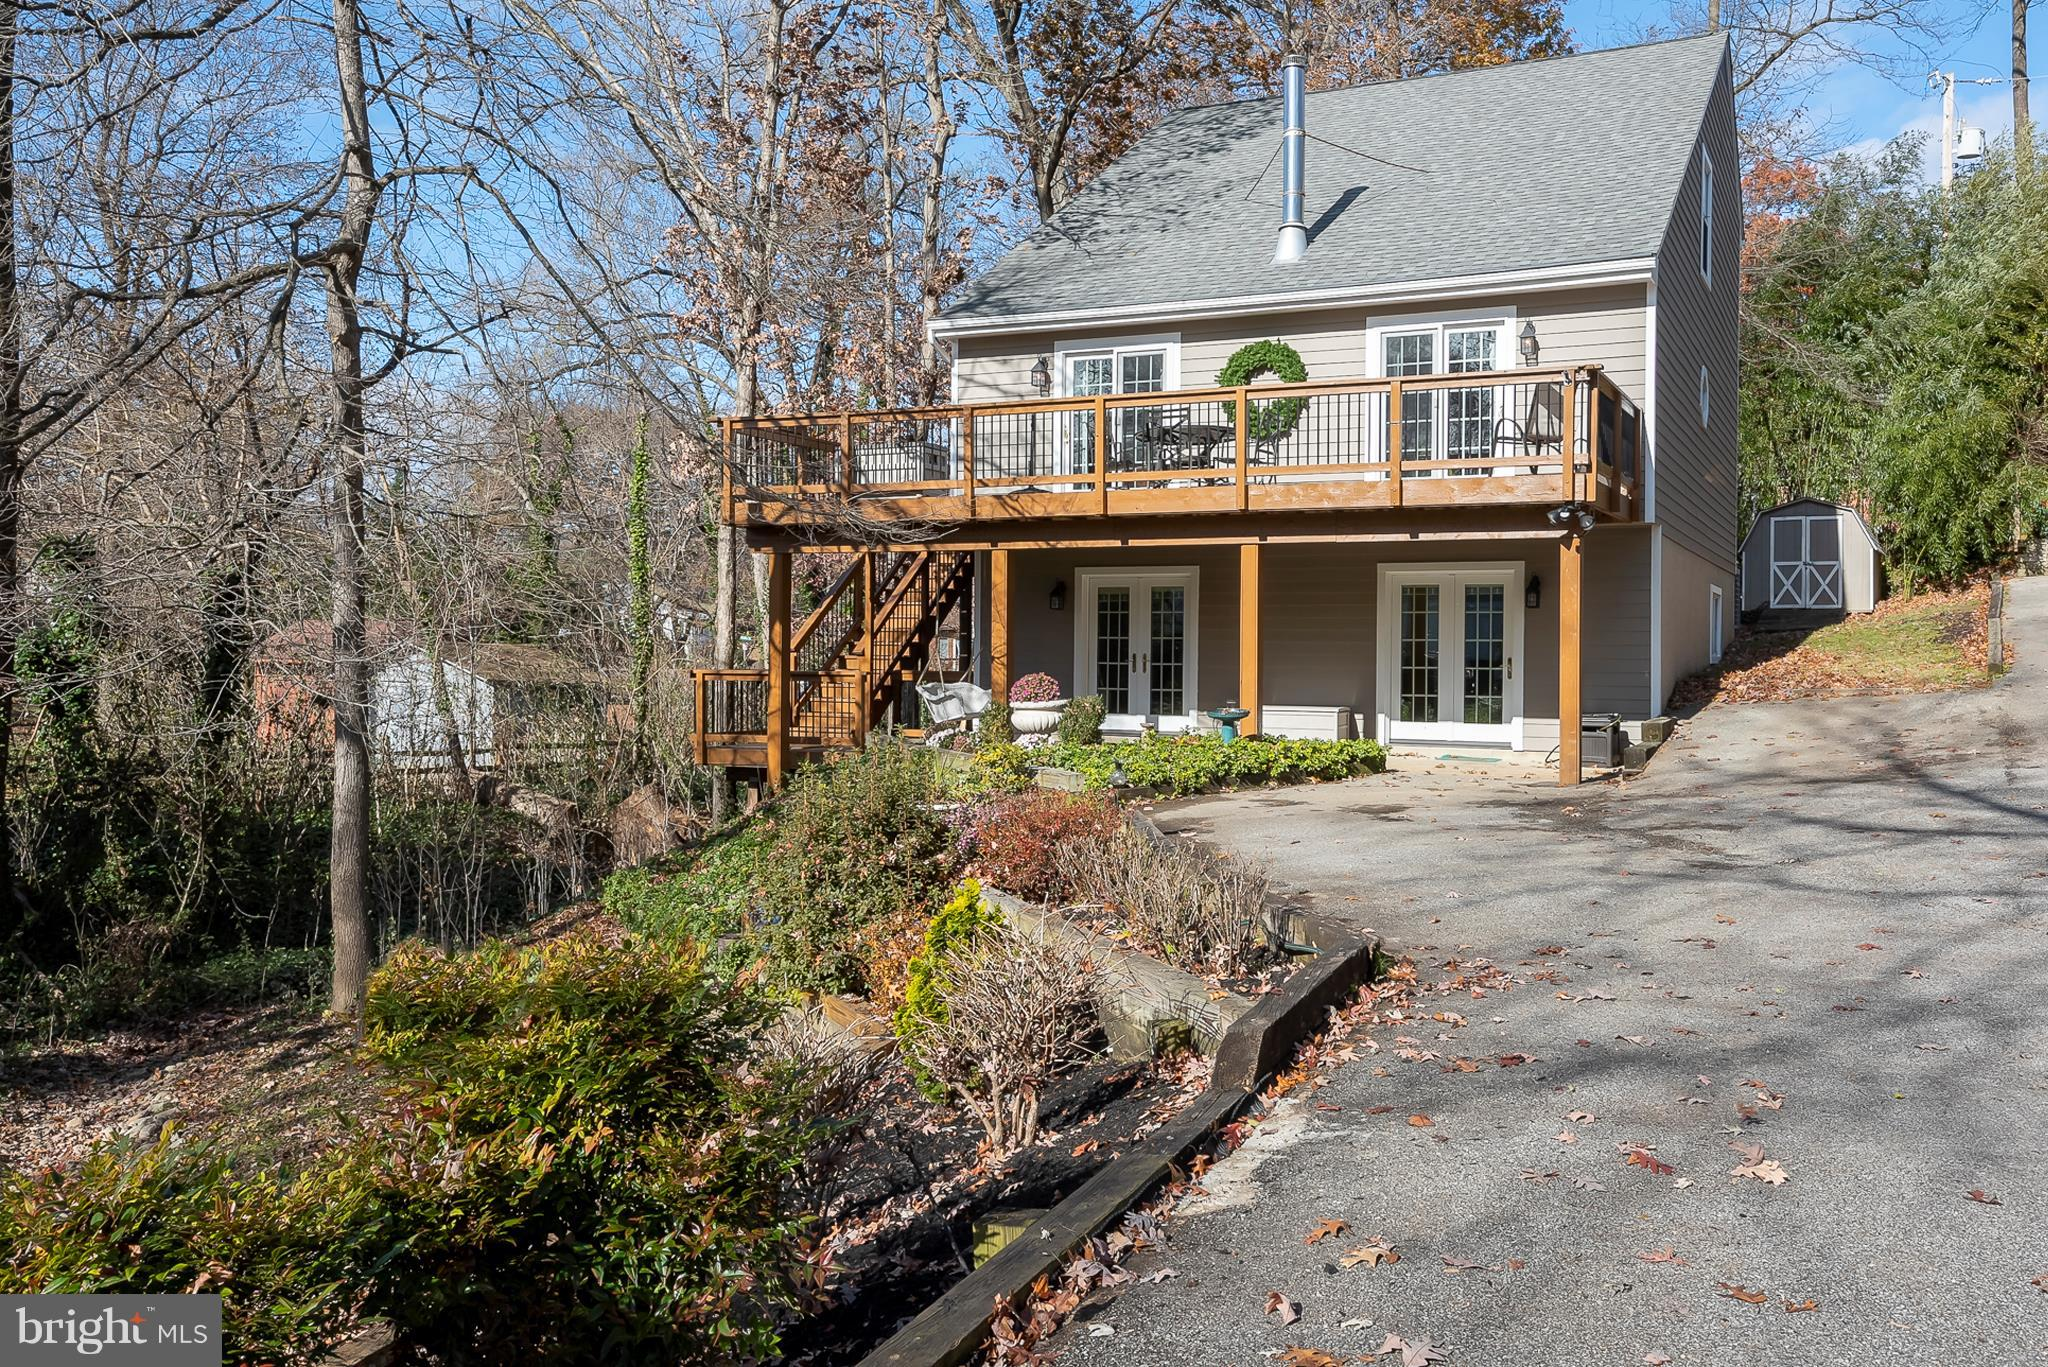 508 GREENWOOD ROAD, LINTHICUM HEIGHTS, MD 21090